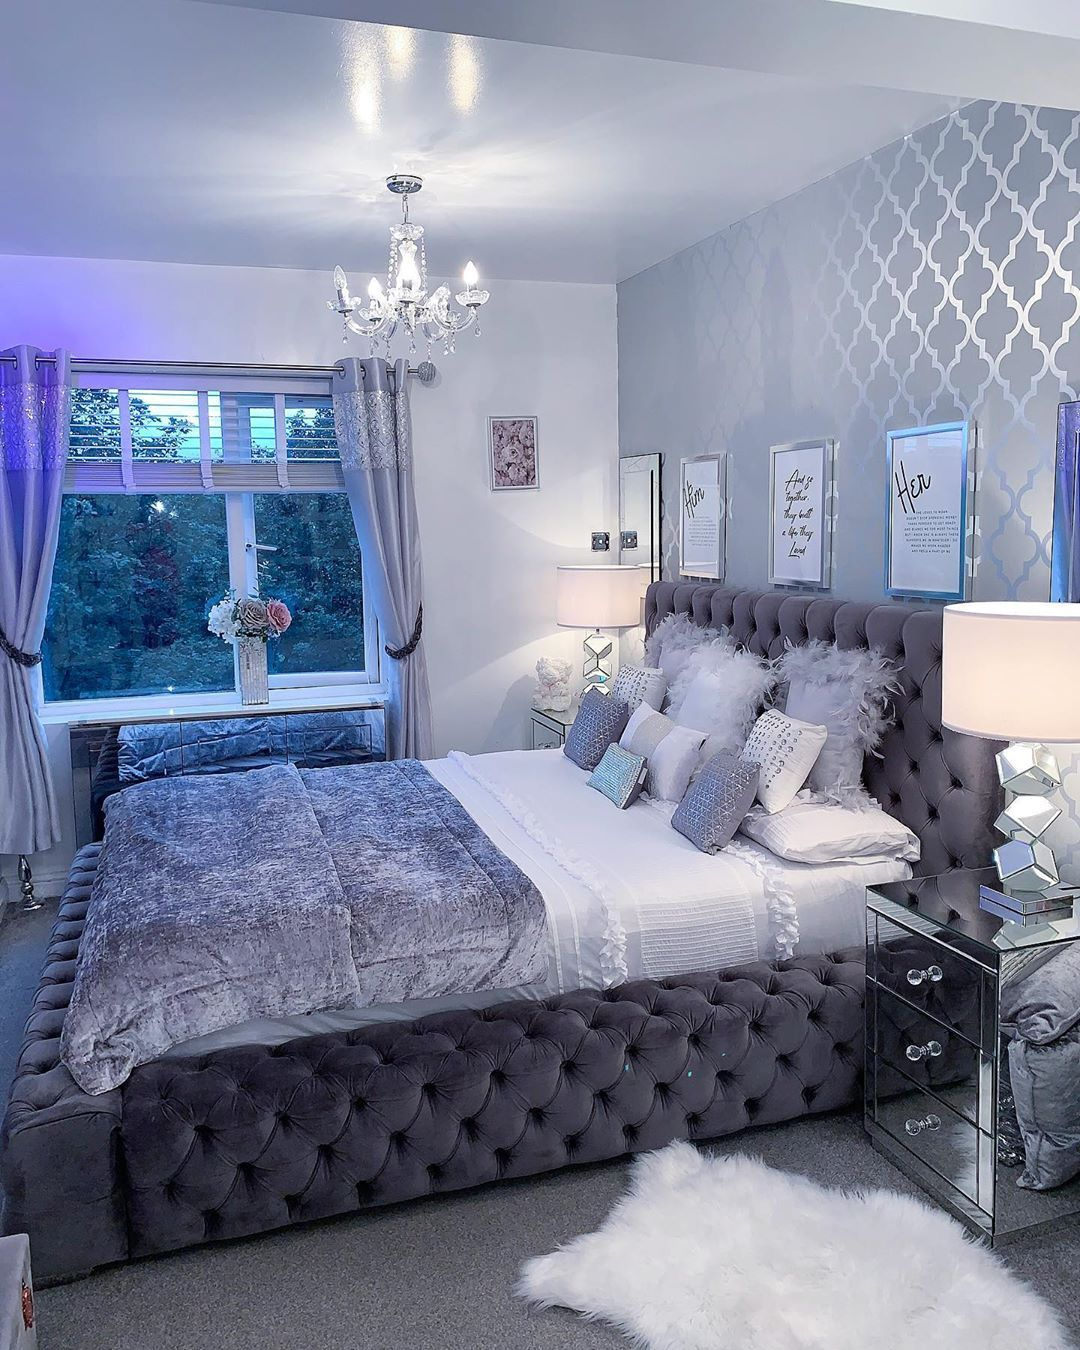 Photo of 999 Best Bedroom Decoration Ideas #bedroom #decor #bedroomdesign #luxuriousbedrooms